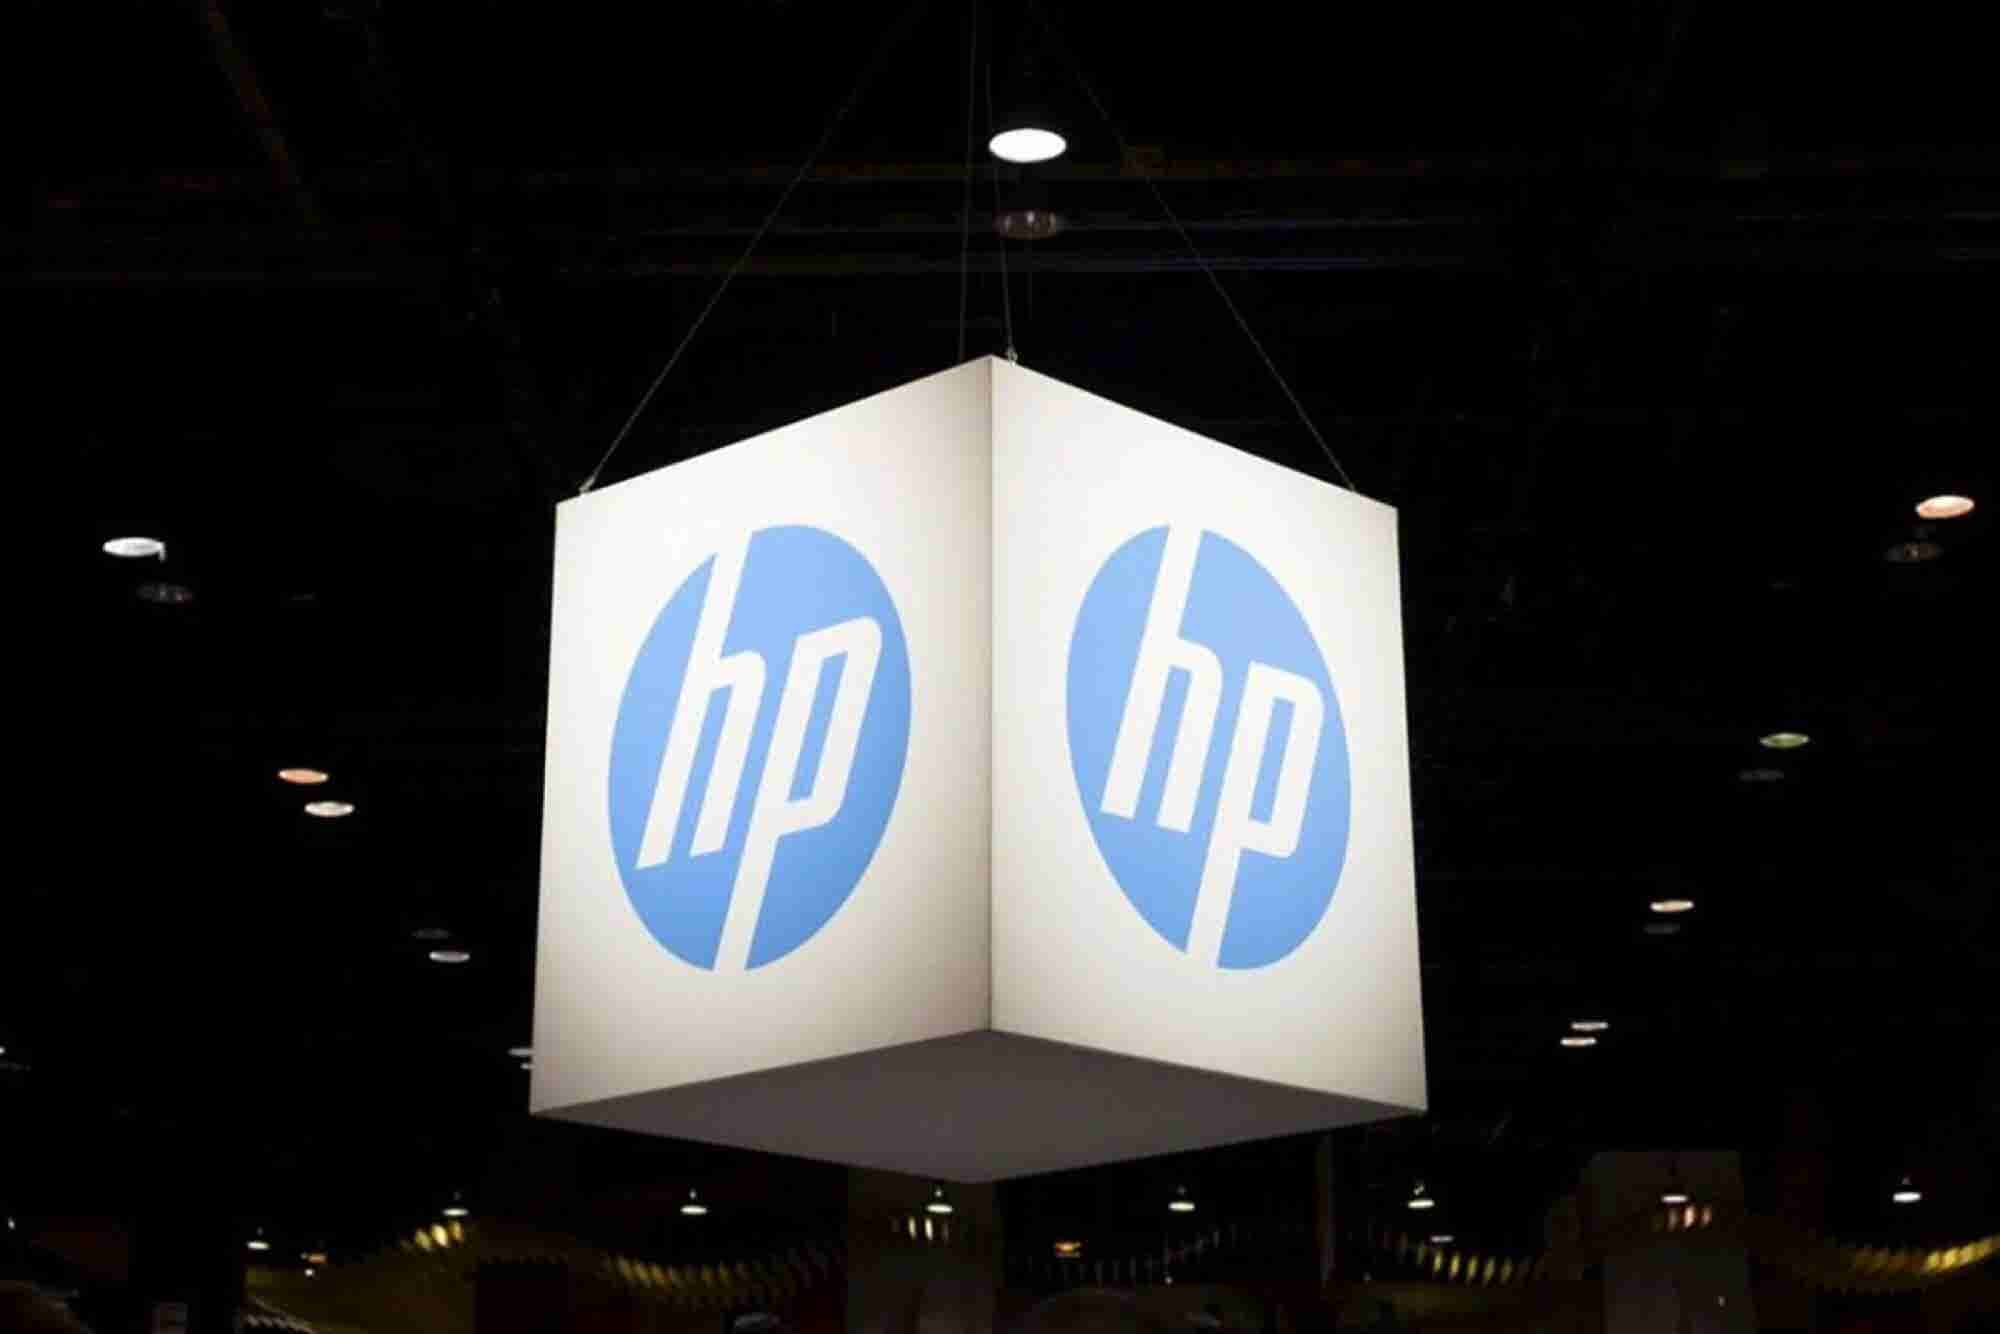 HP to Buy Samsung's Printer Business in $1.05 Billion Deal